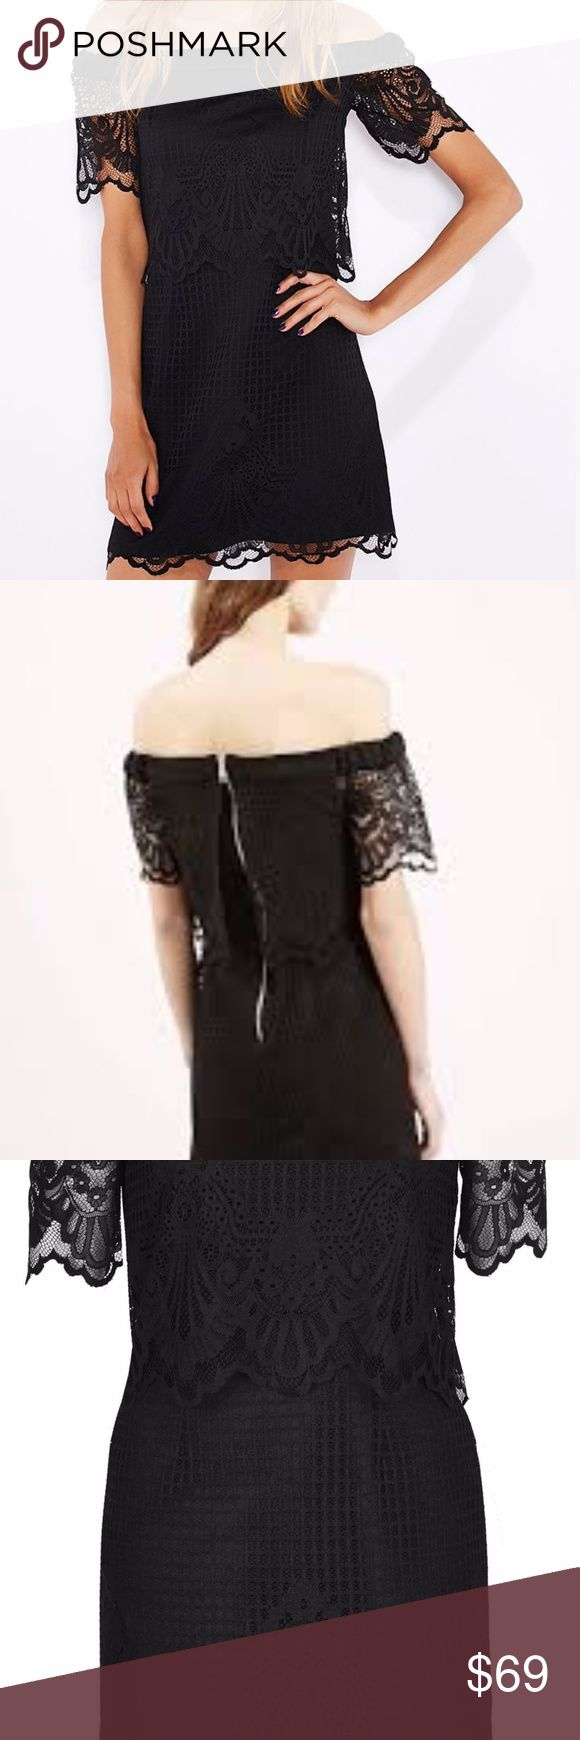 NWT Topshop Petite Bardot Black Lace Dress Pretty lace dress with bardot neckline and crop overlay to the top. Fastens with back zip.100% Polyester. Machine wash. Perfect little number to dress up for a Halloween party! Topshop Dresses